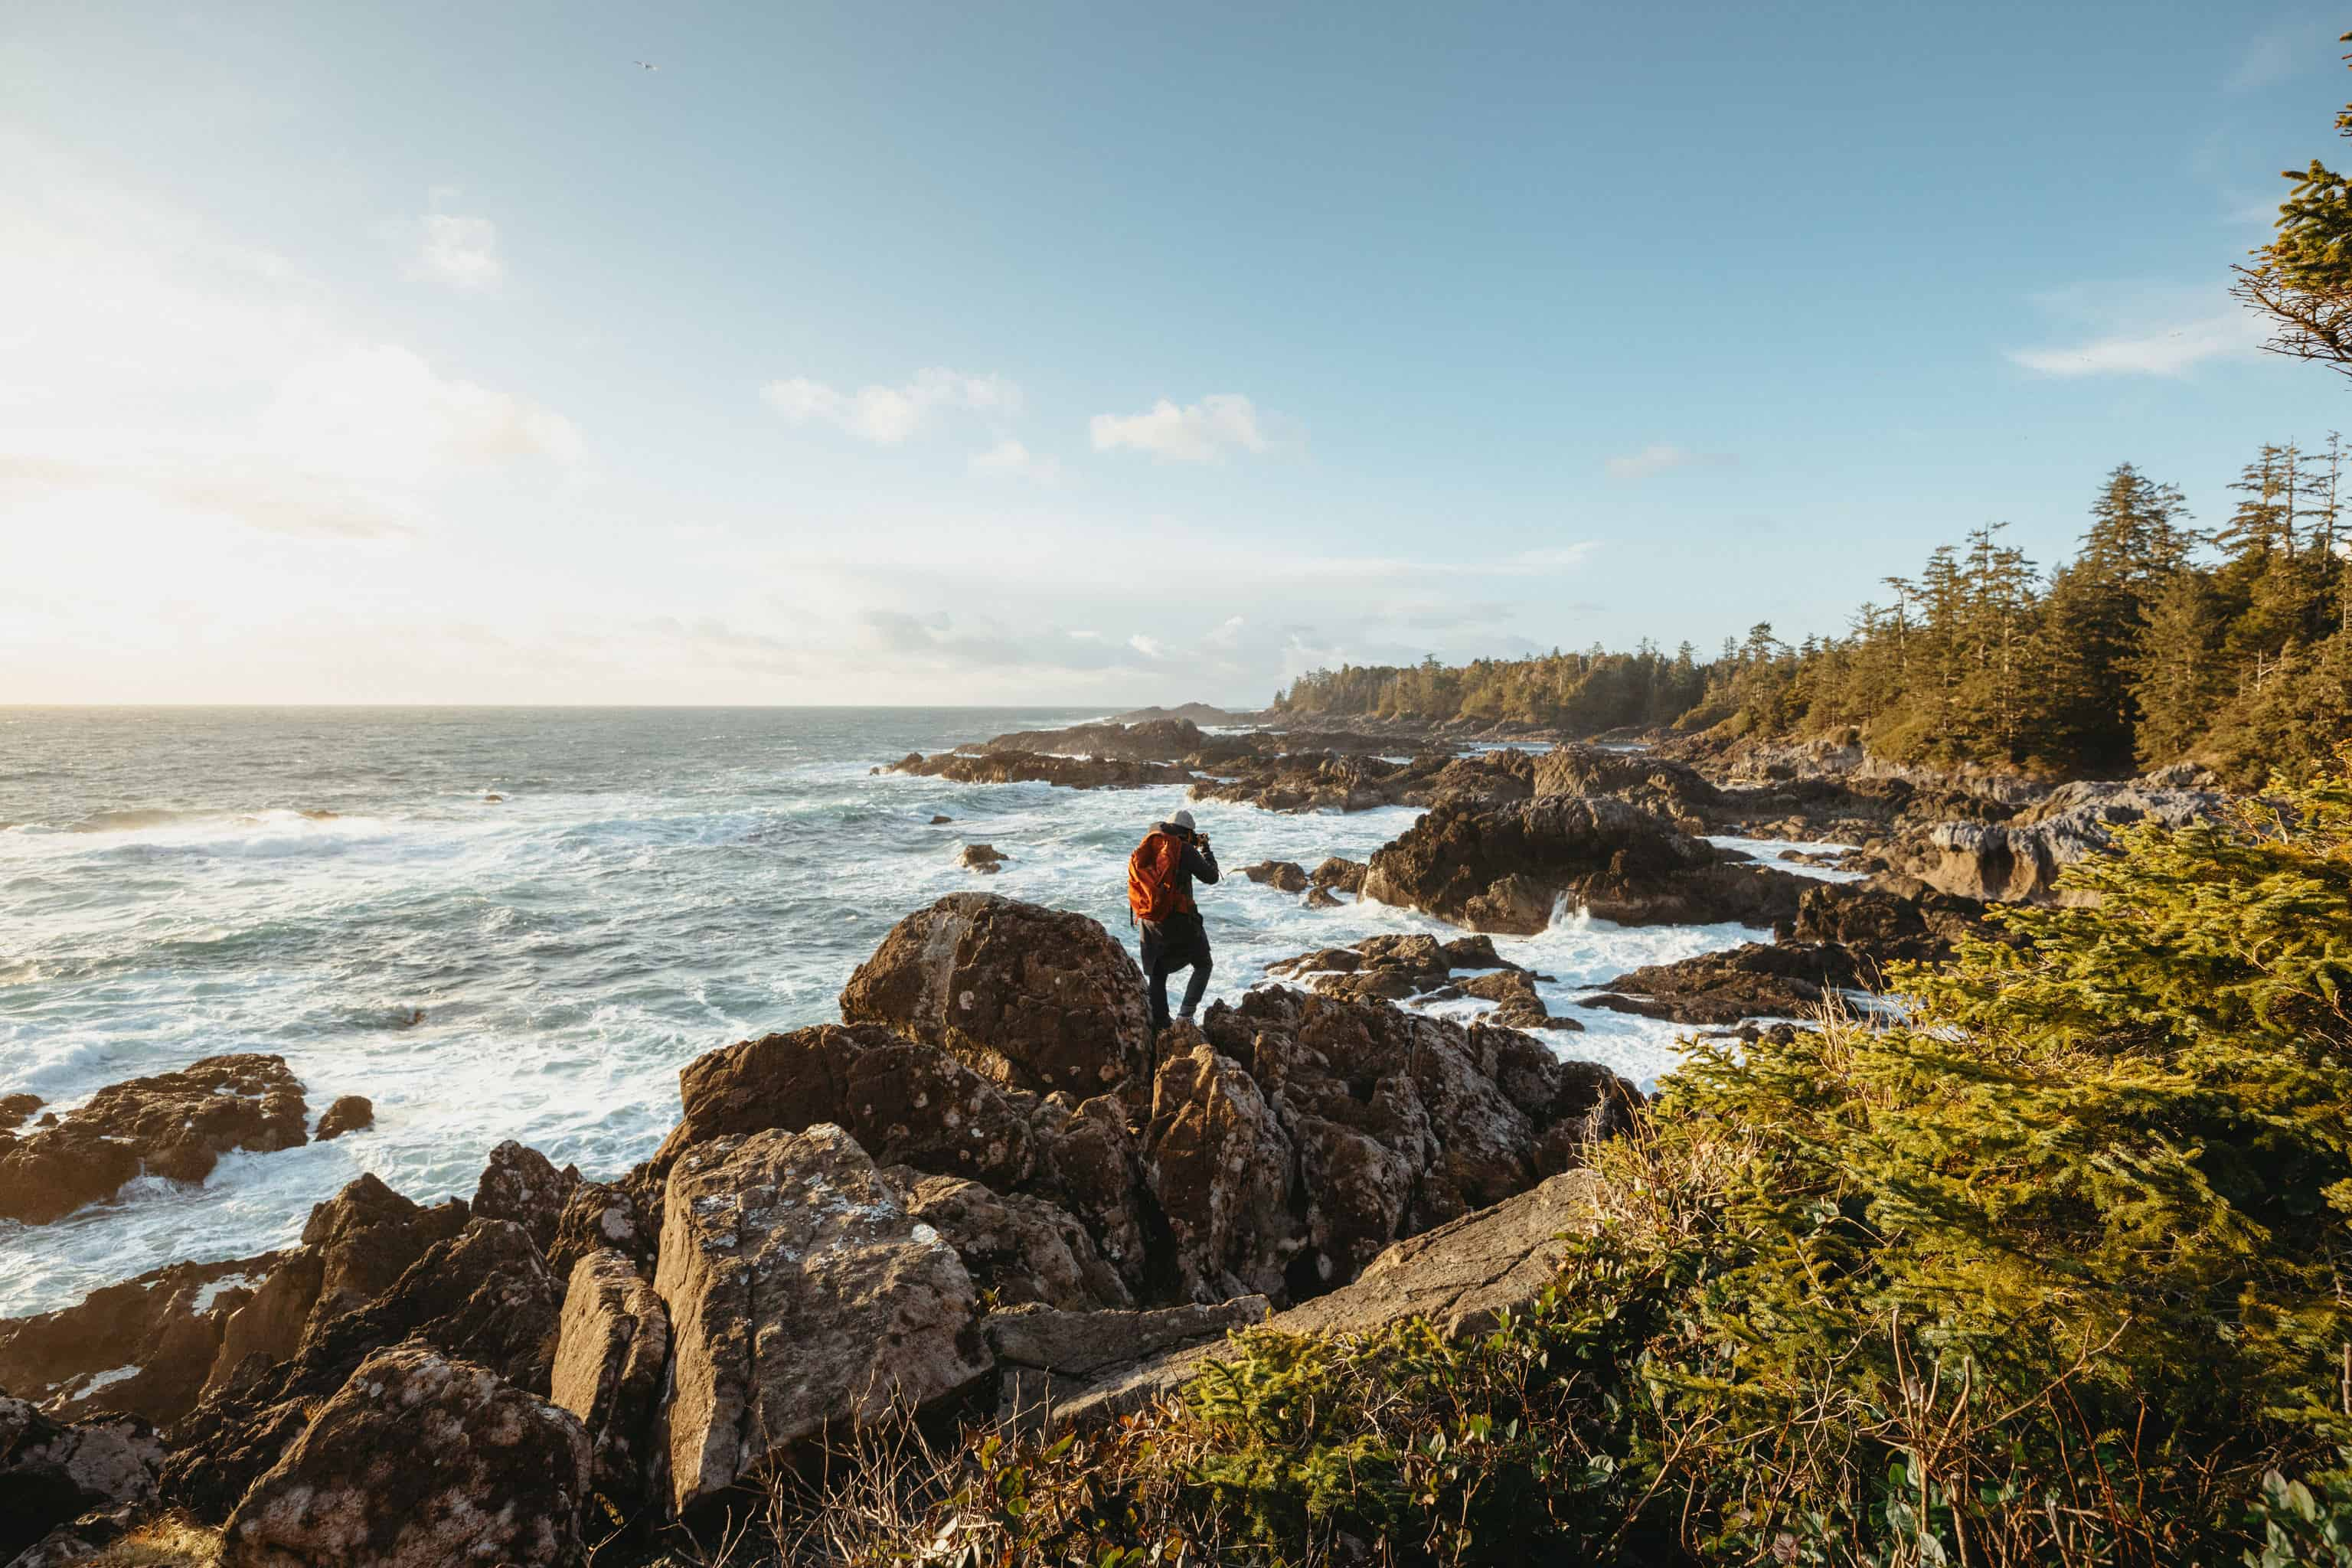 How To Plan A Trip To The Pacific Northwest (First-Timer's Guide To Regions, Adventures + Itineraries!)